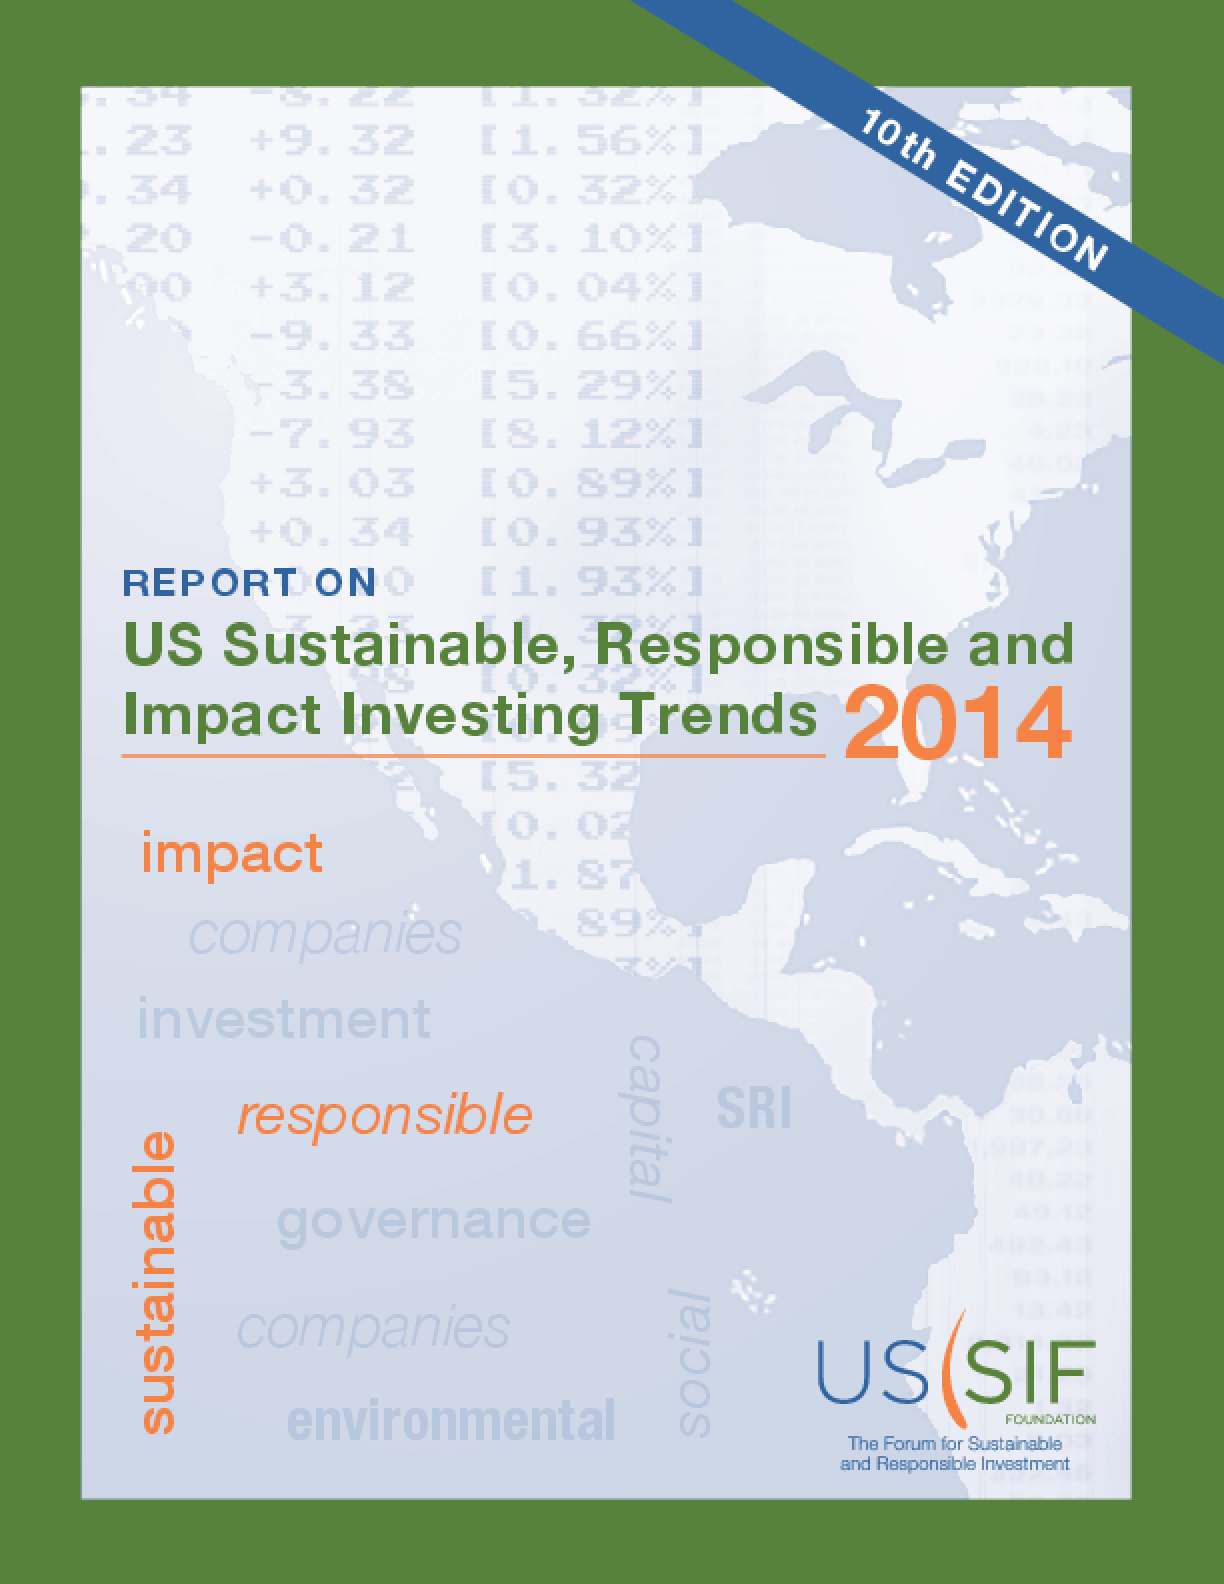 Report On U.S. Sustainable, Responsible and Impact Investing Trends 2014